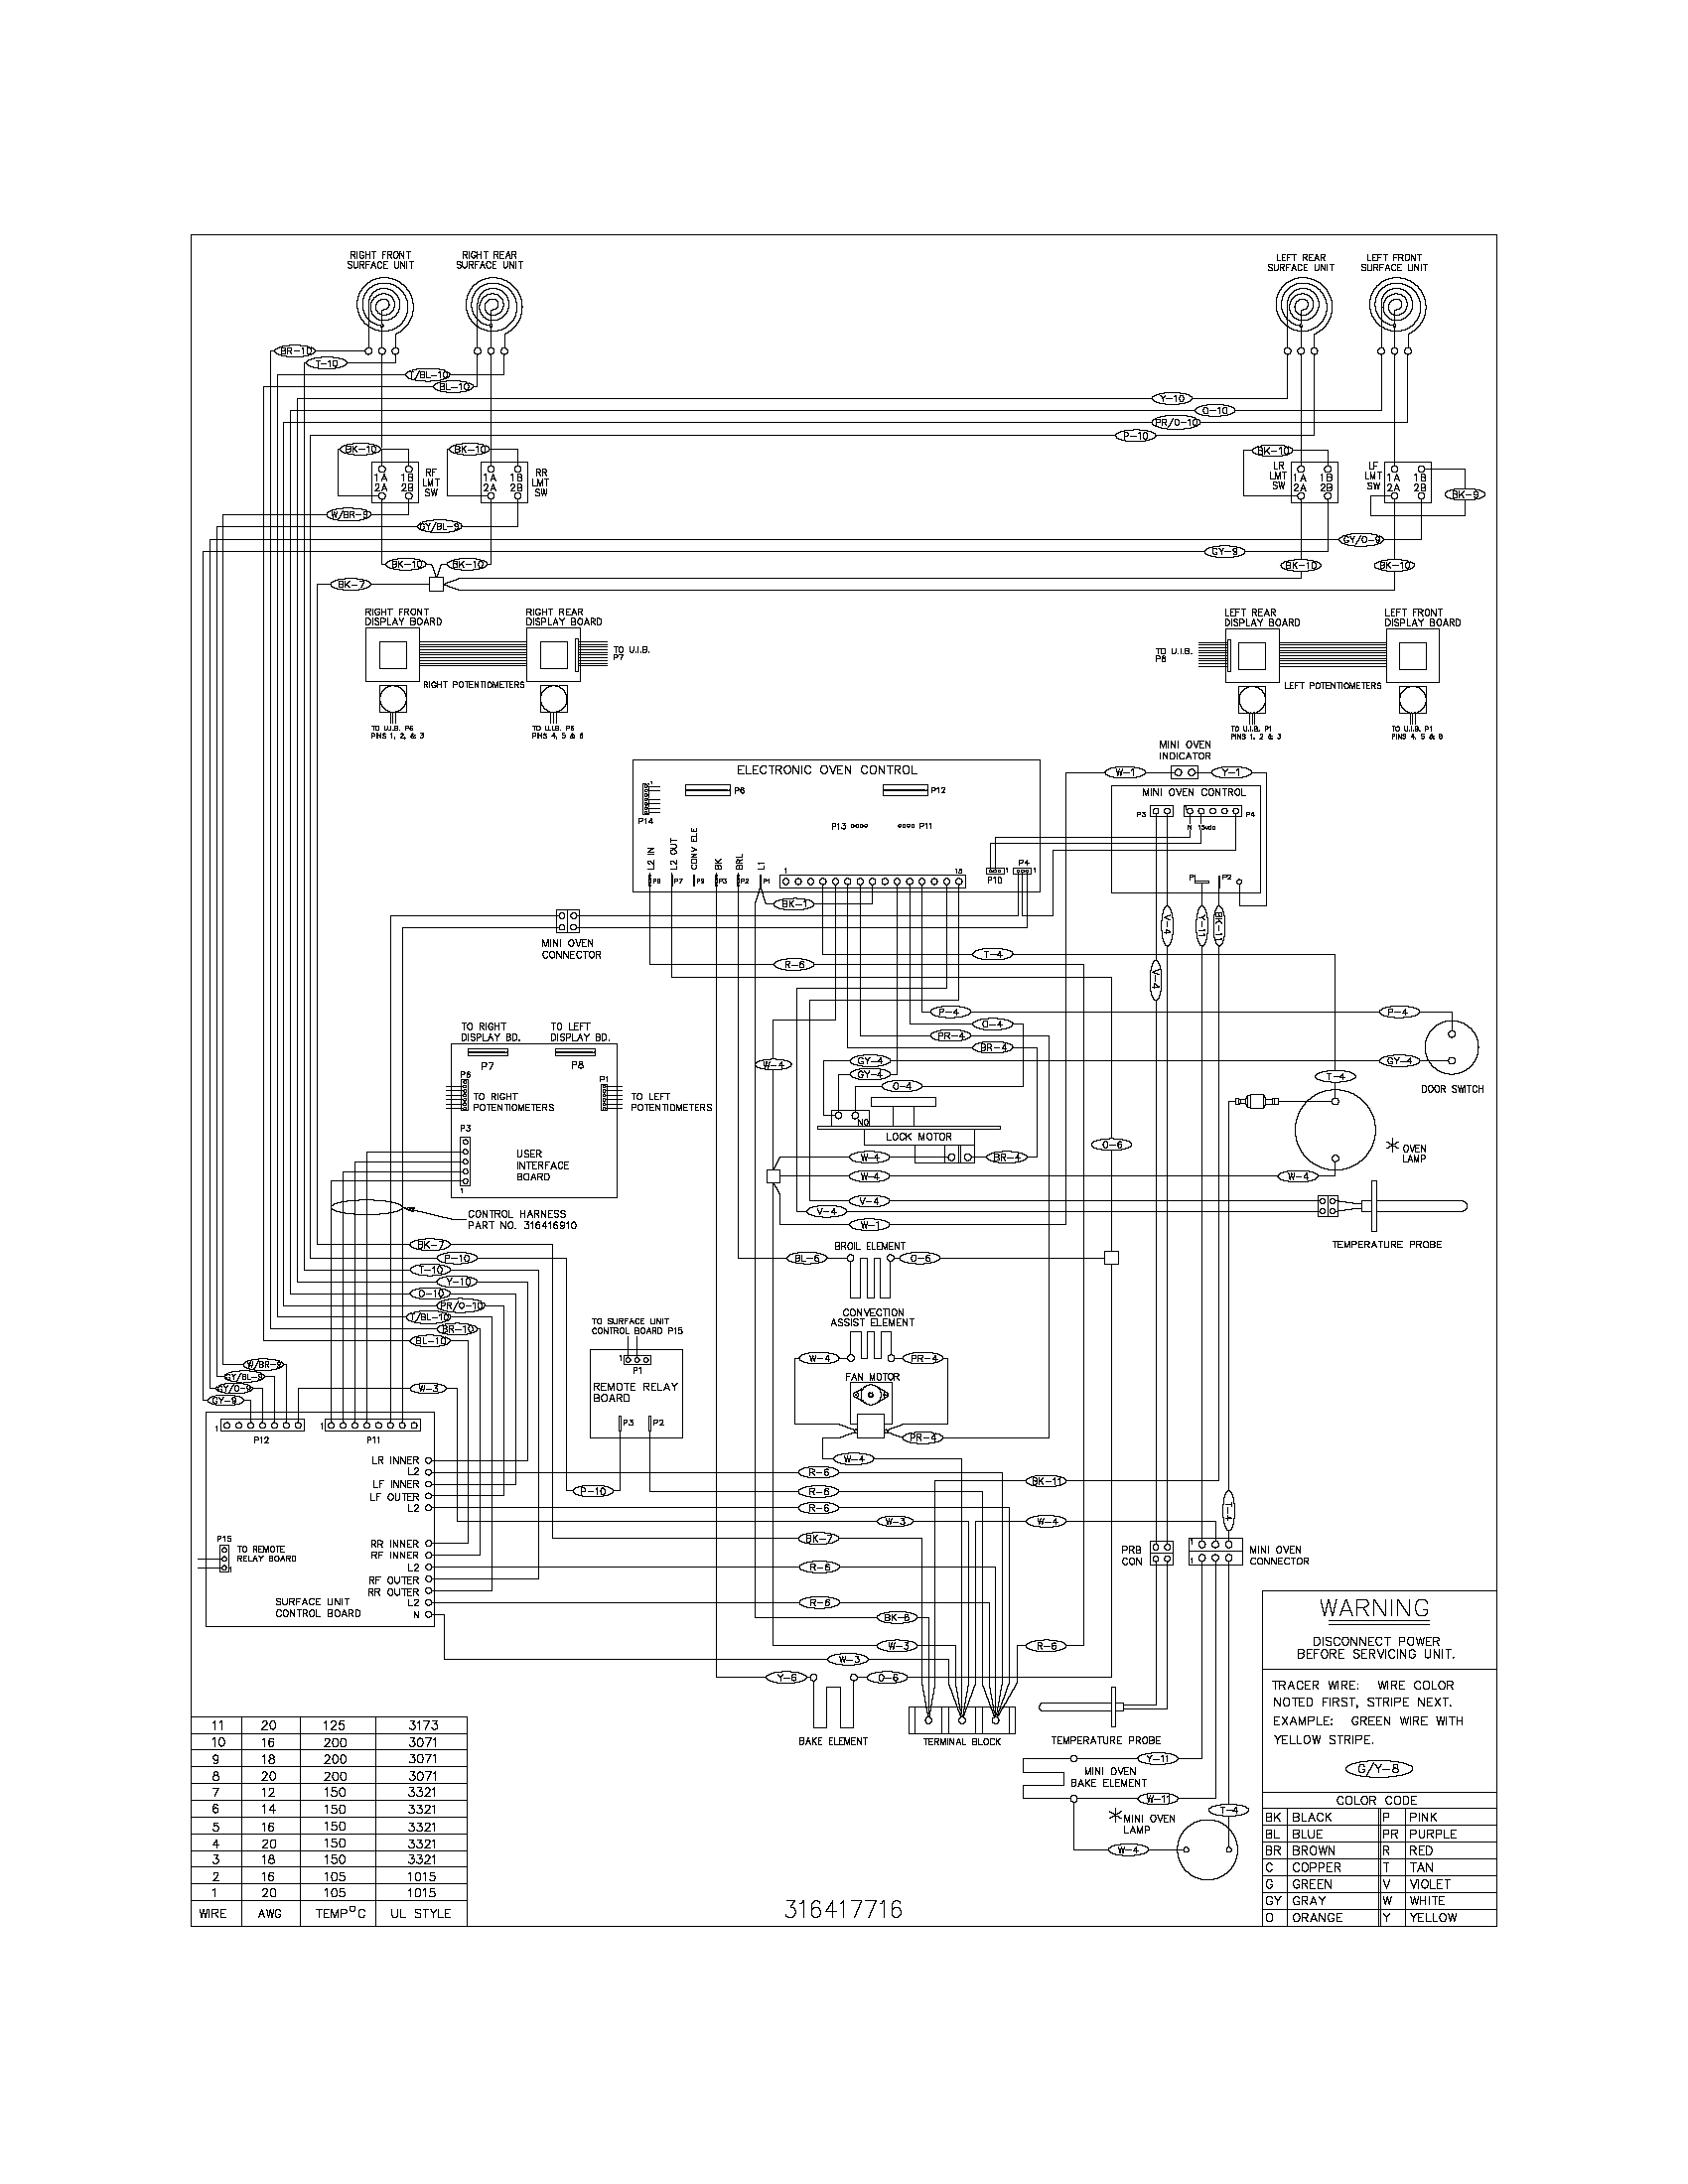 wiring diagram parts odes wiring diagram e z go wiring diagram \u2022 wiring diagrams j wiring diagram for frigidaire refrigerator at fashall.co